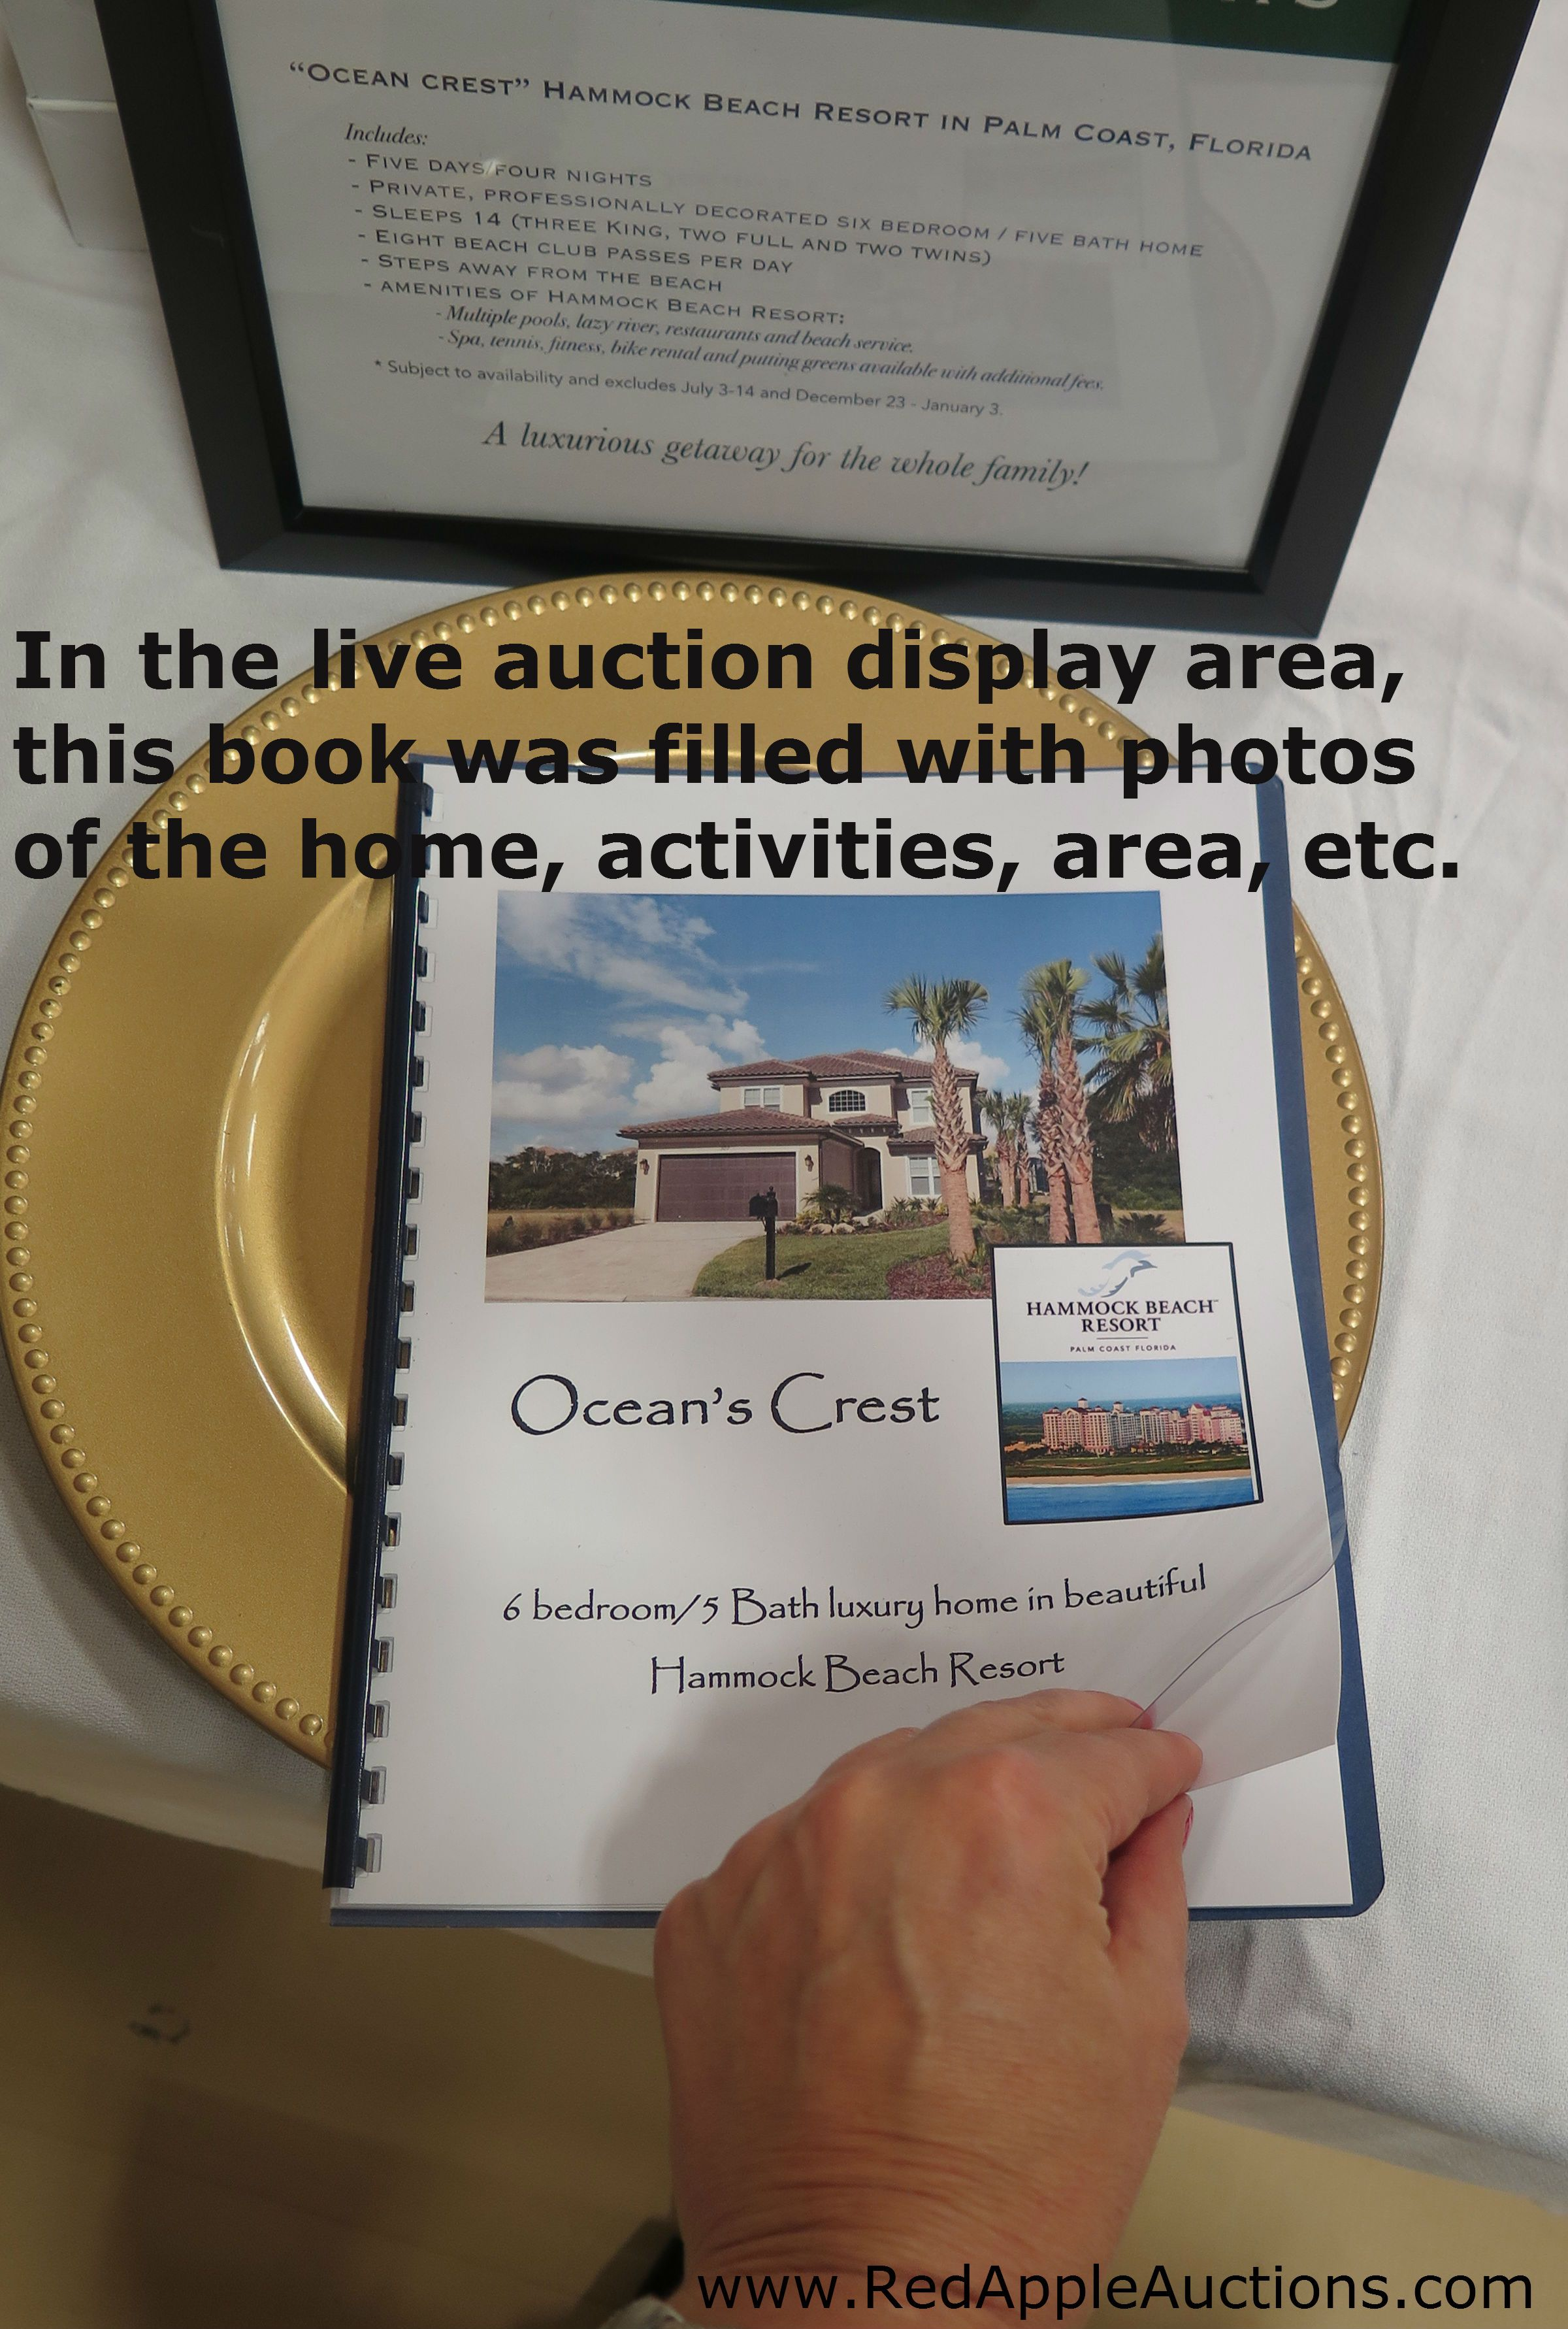 This Was A Live Auction Display Though The Idea Would